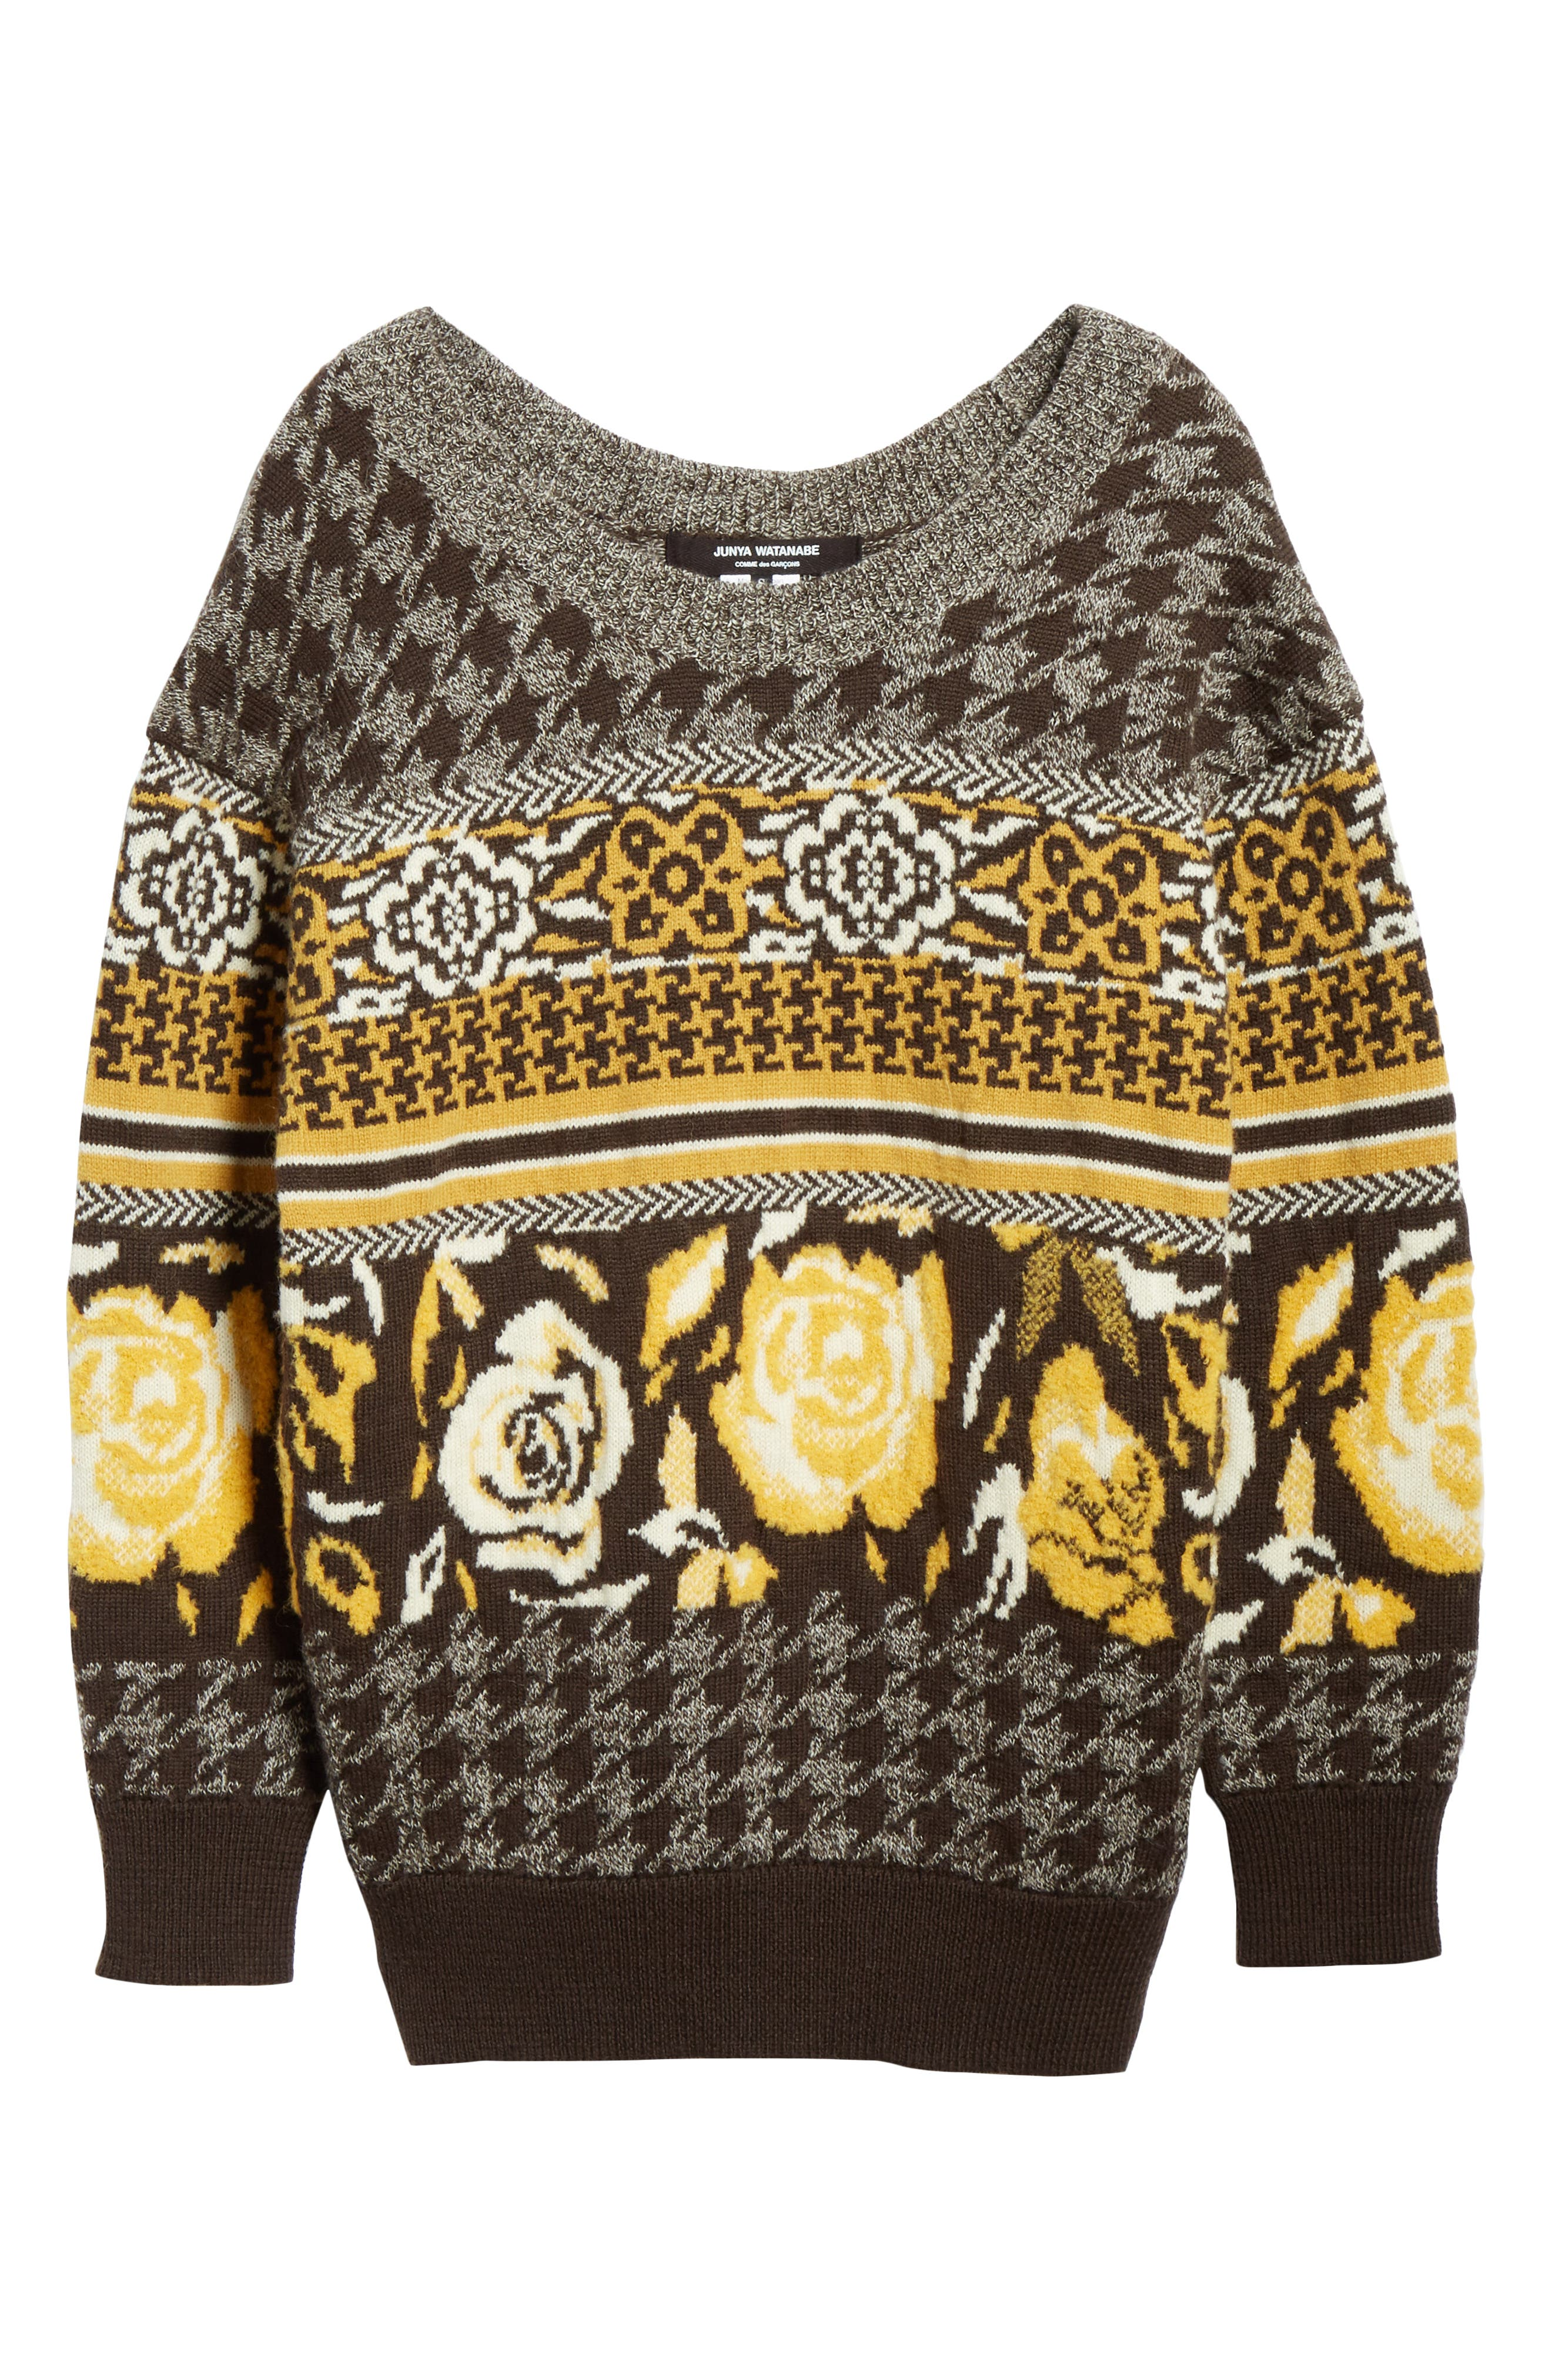 Oversized Sweater,                             Alternate thumbnail 7, color,                             BROWN/ WHITE/ YELLOW